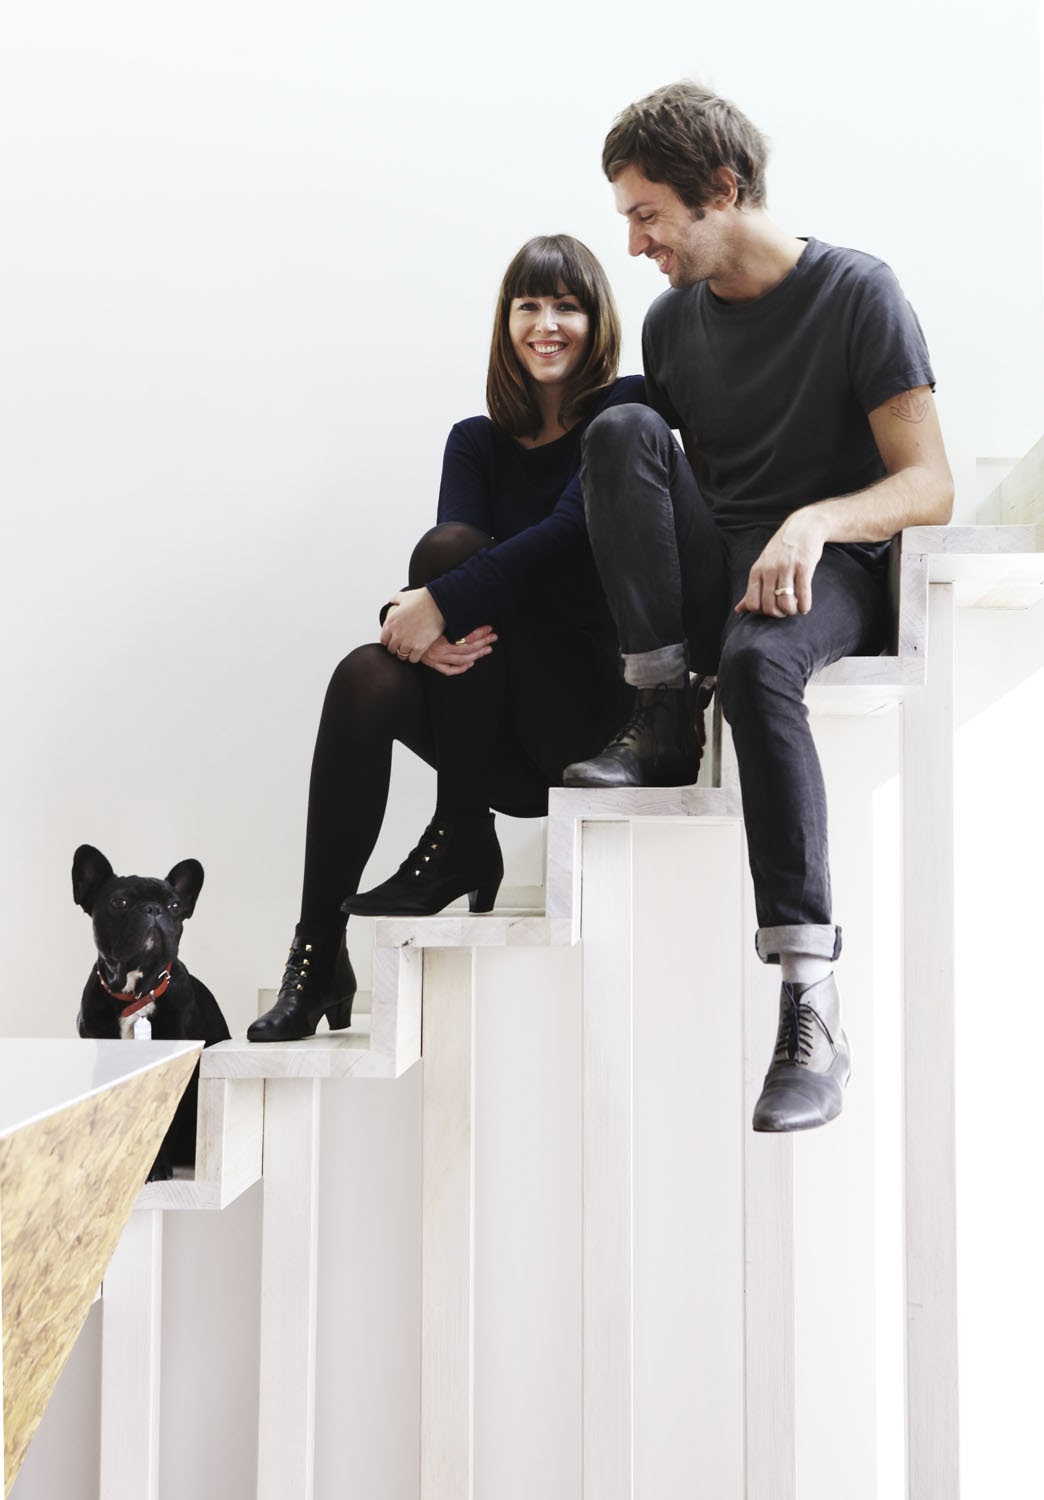 Ben Edwards, his partner and their pet dog sit on the stairs of their home Cubby House